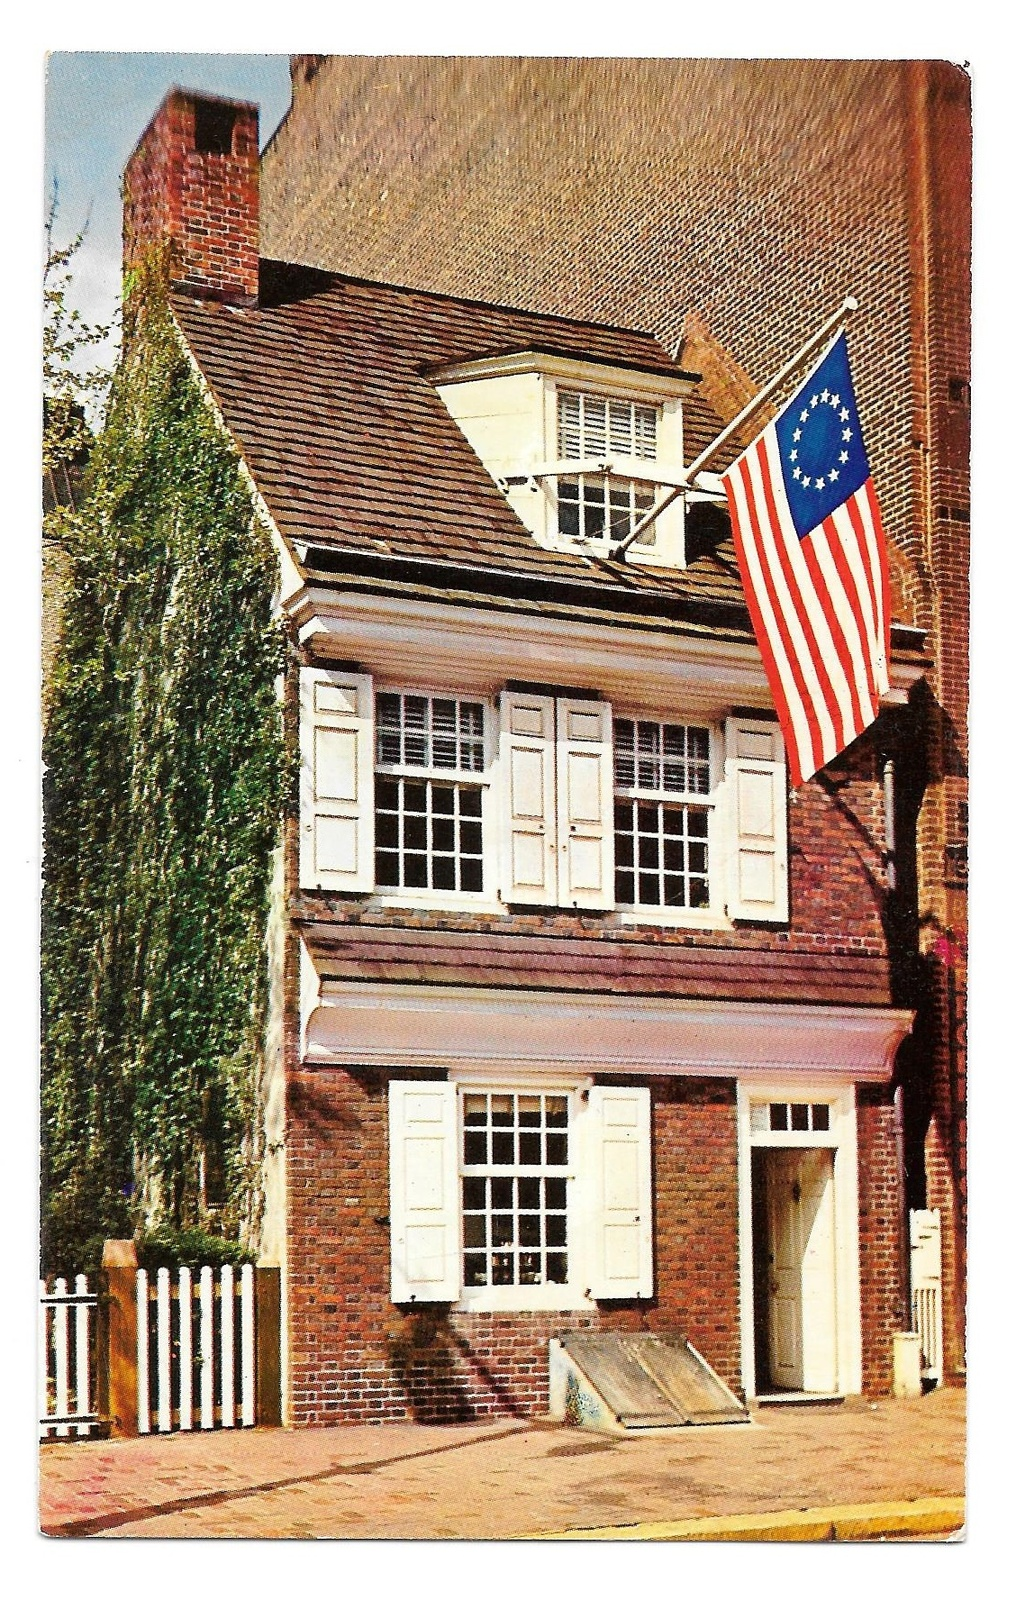 95 c br 180 2011 betsy ross house mike roberts